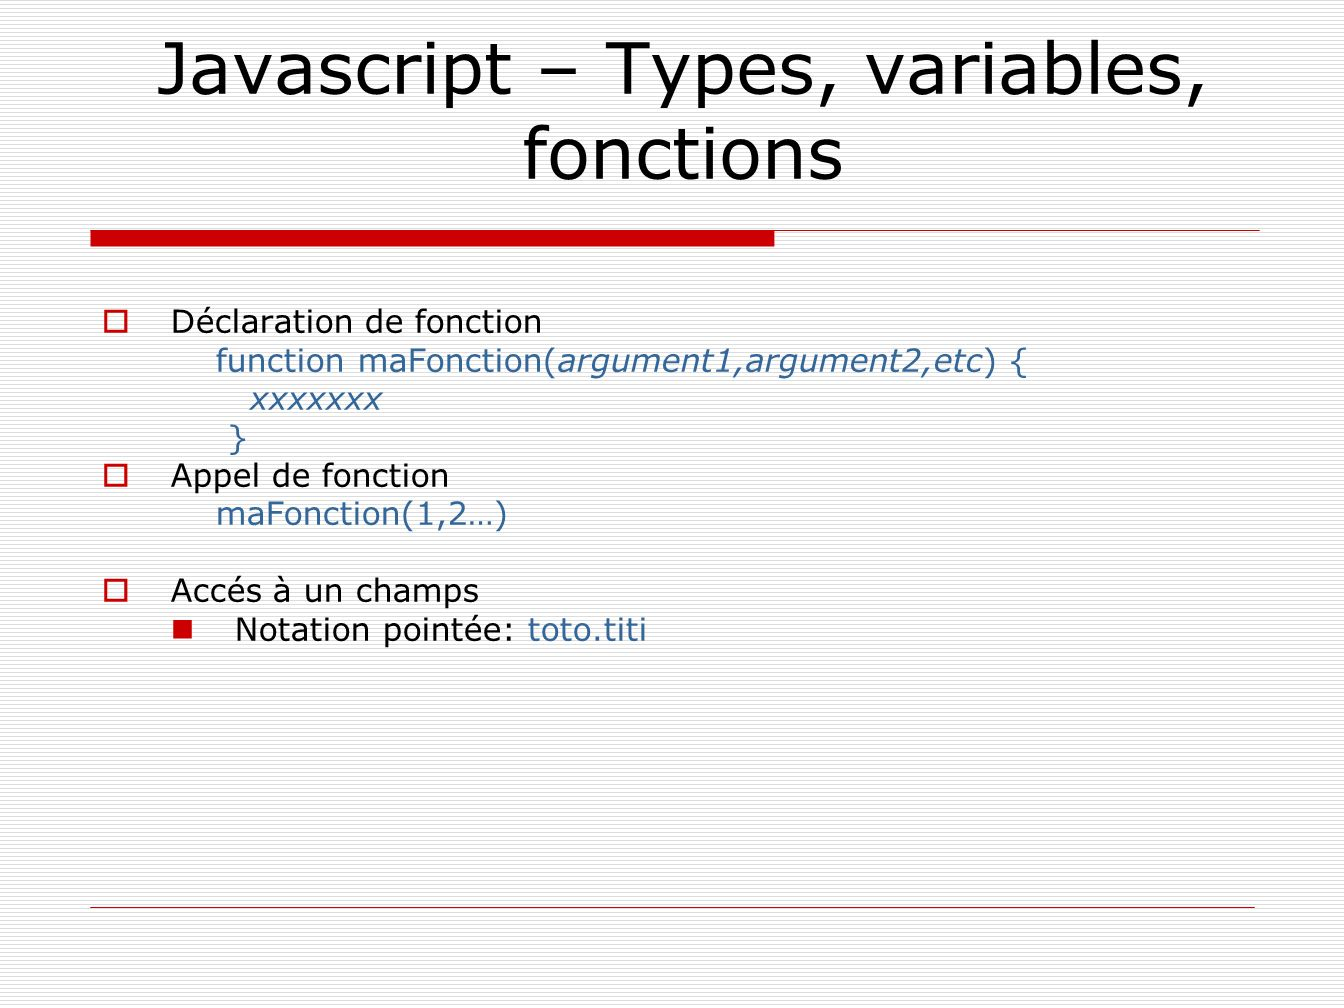 Javascript – Types, variables, fonctions Déclaration de fonction function maFonction(argument1,argument2,etc) { xxxxxxx } Appel de fonction maFonction